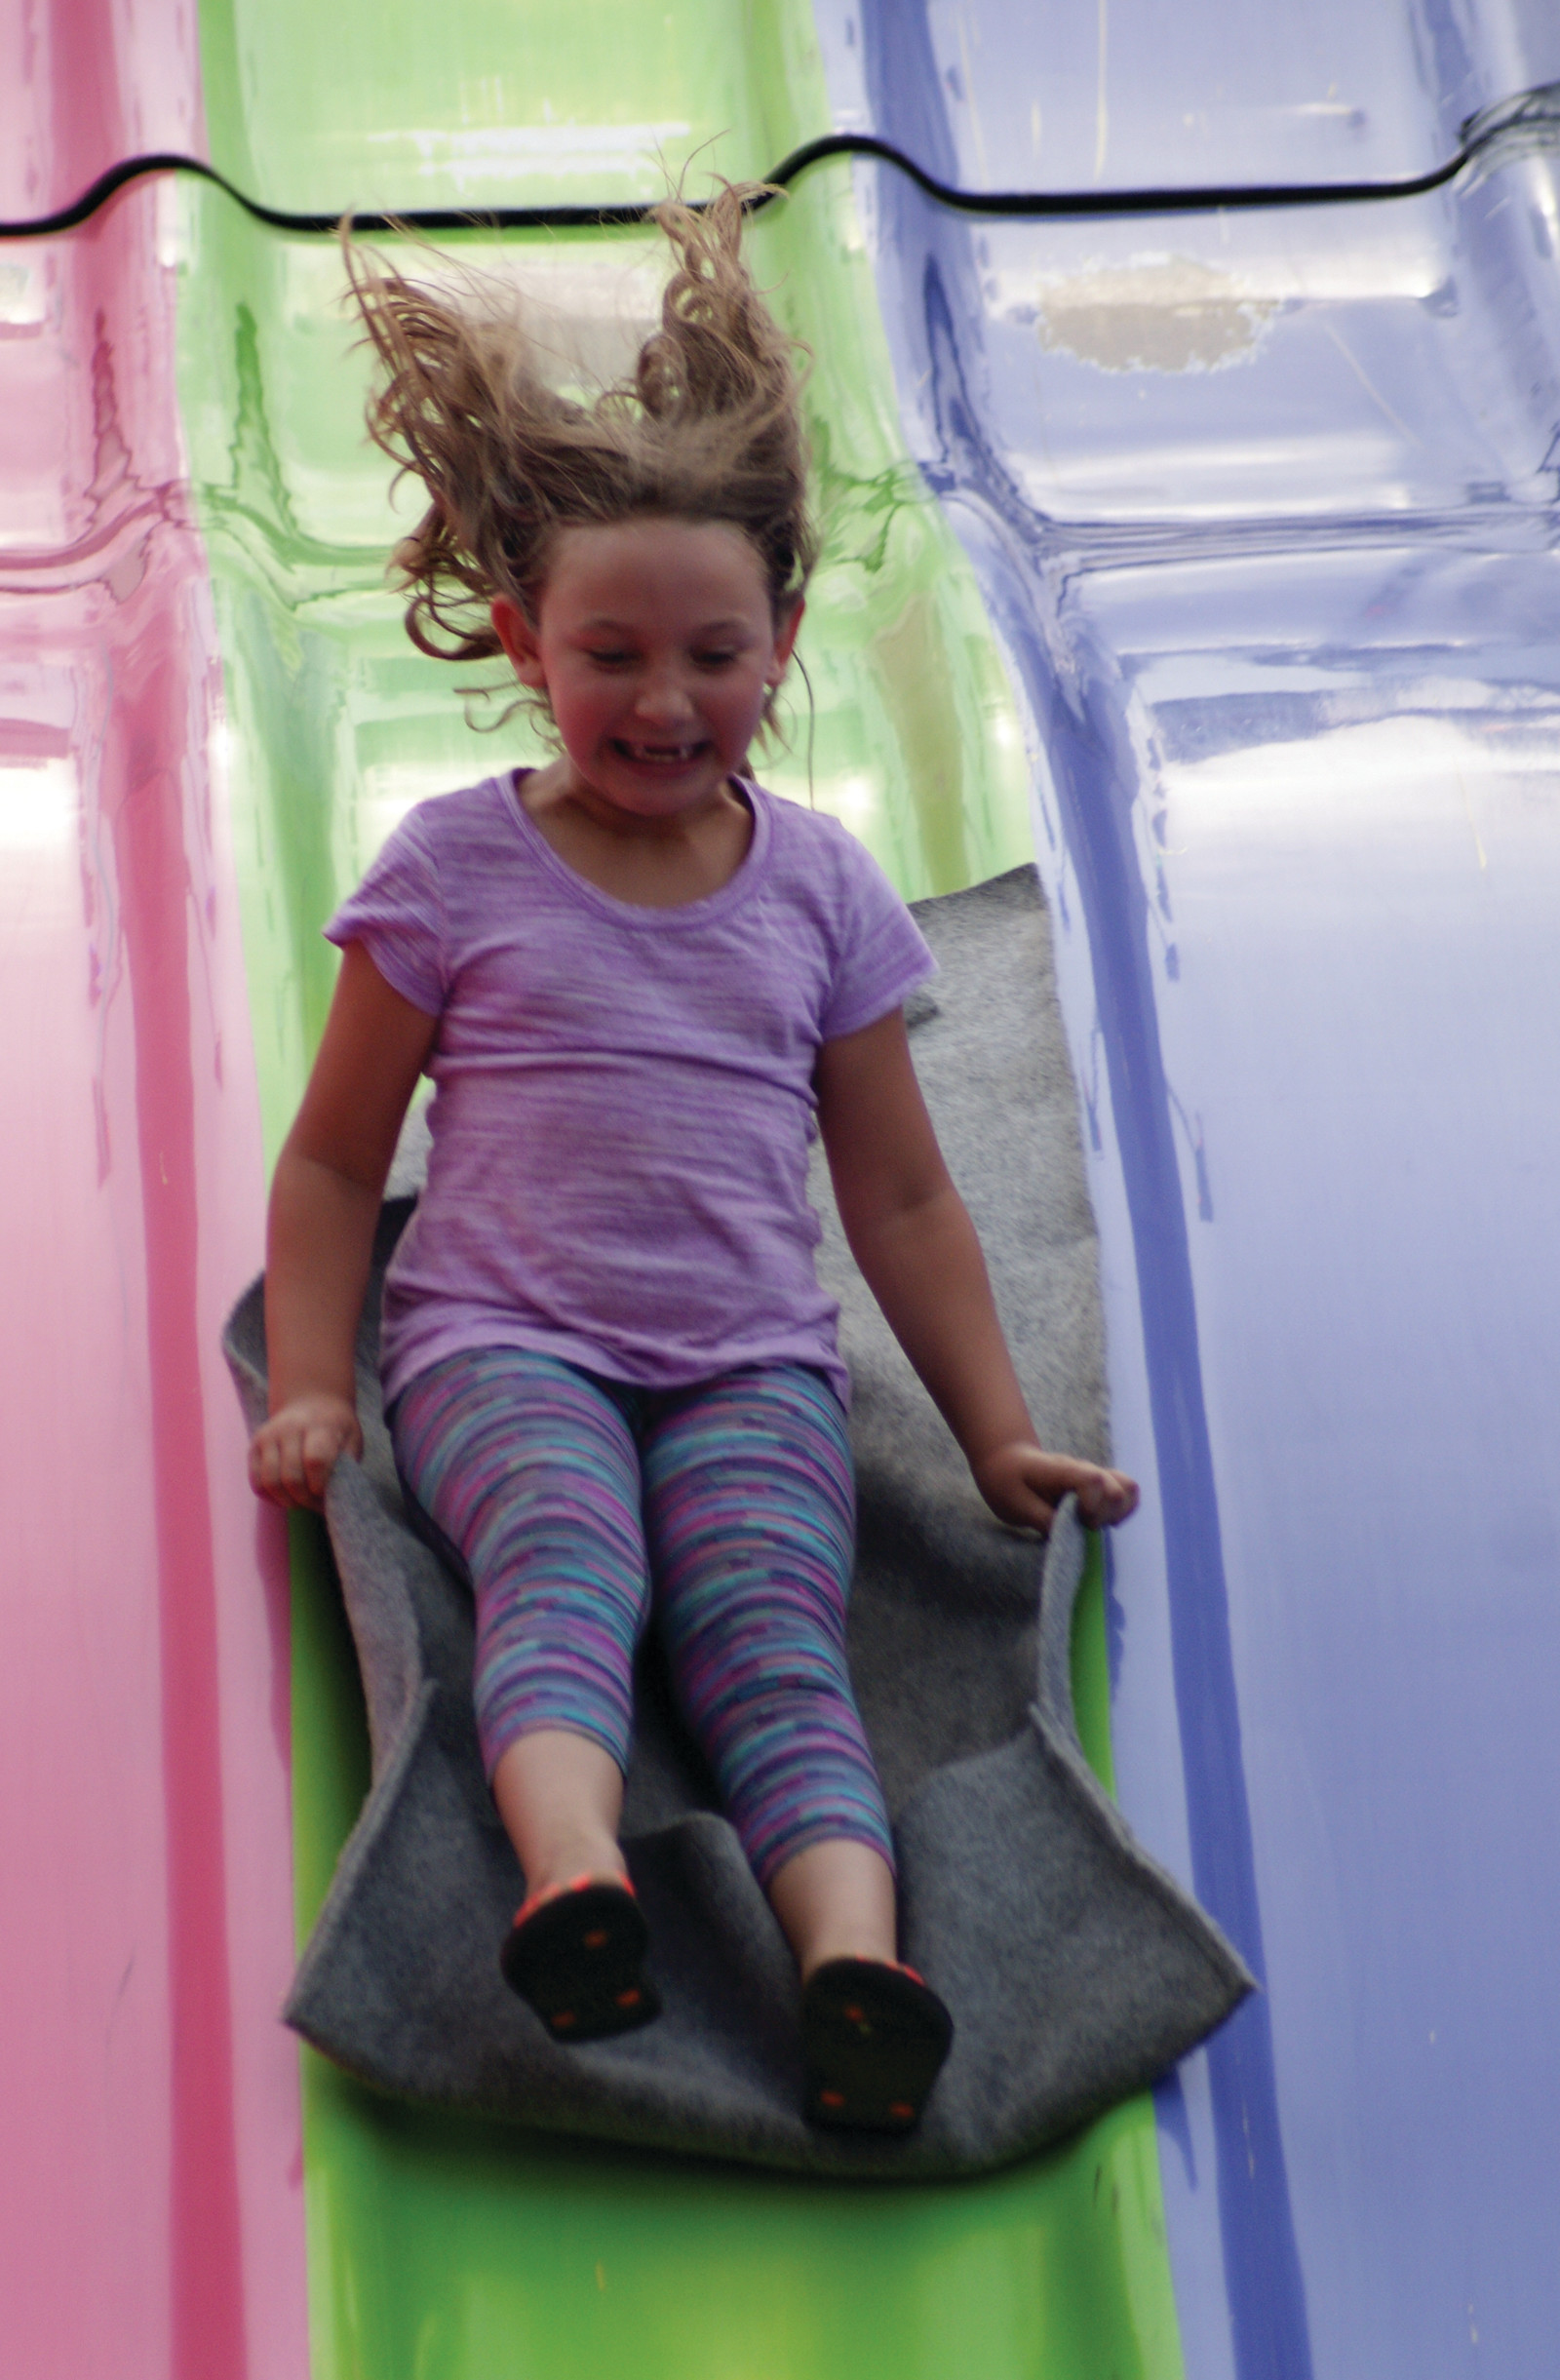 SLIDING INTO THE WEEKEND: Ashlyn Savaria, 7, enjoys the slide at the St. Mary's Feast this past weekend.